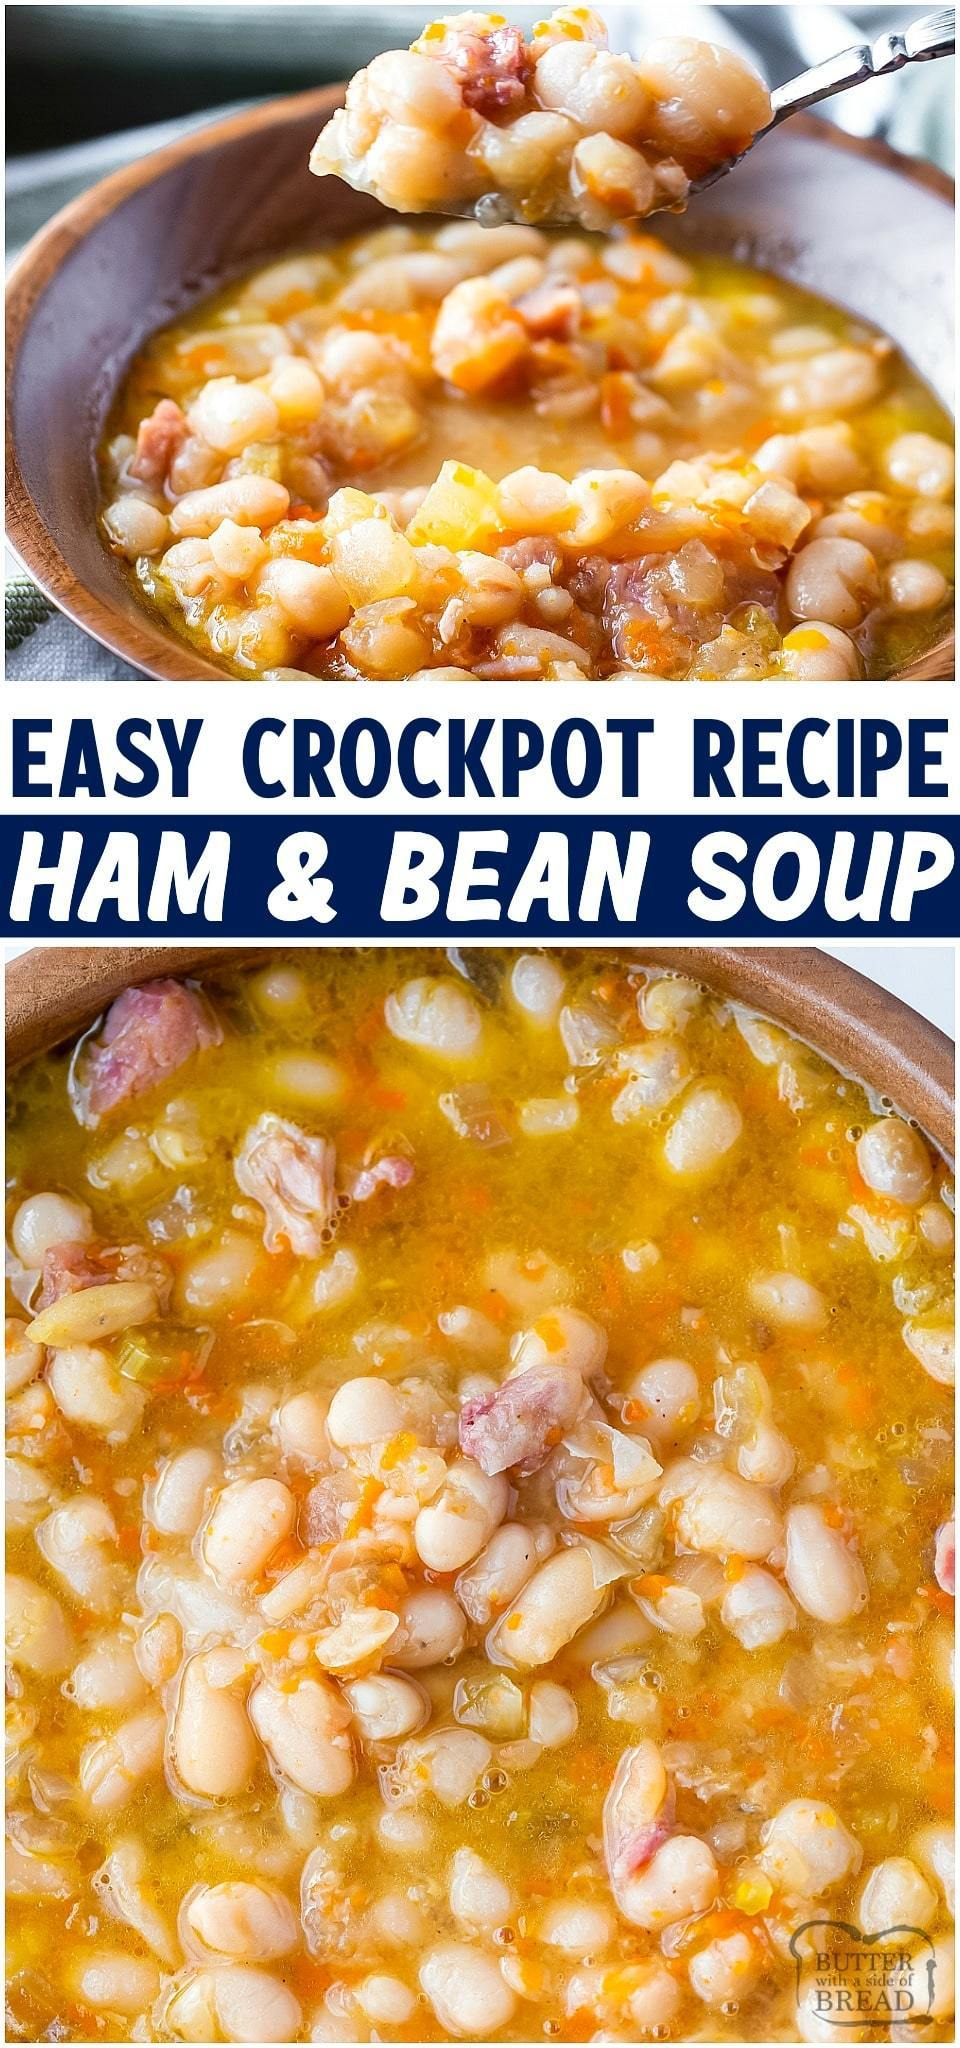 Crockpot ham and bean soup made easy with a ham bone, dried beans & vegetables. Simple & flavorful slow cooker recipe that uses leftover ham and pantry ingredients.